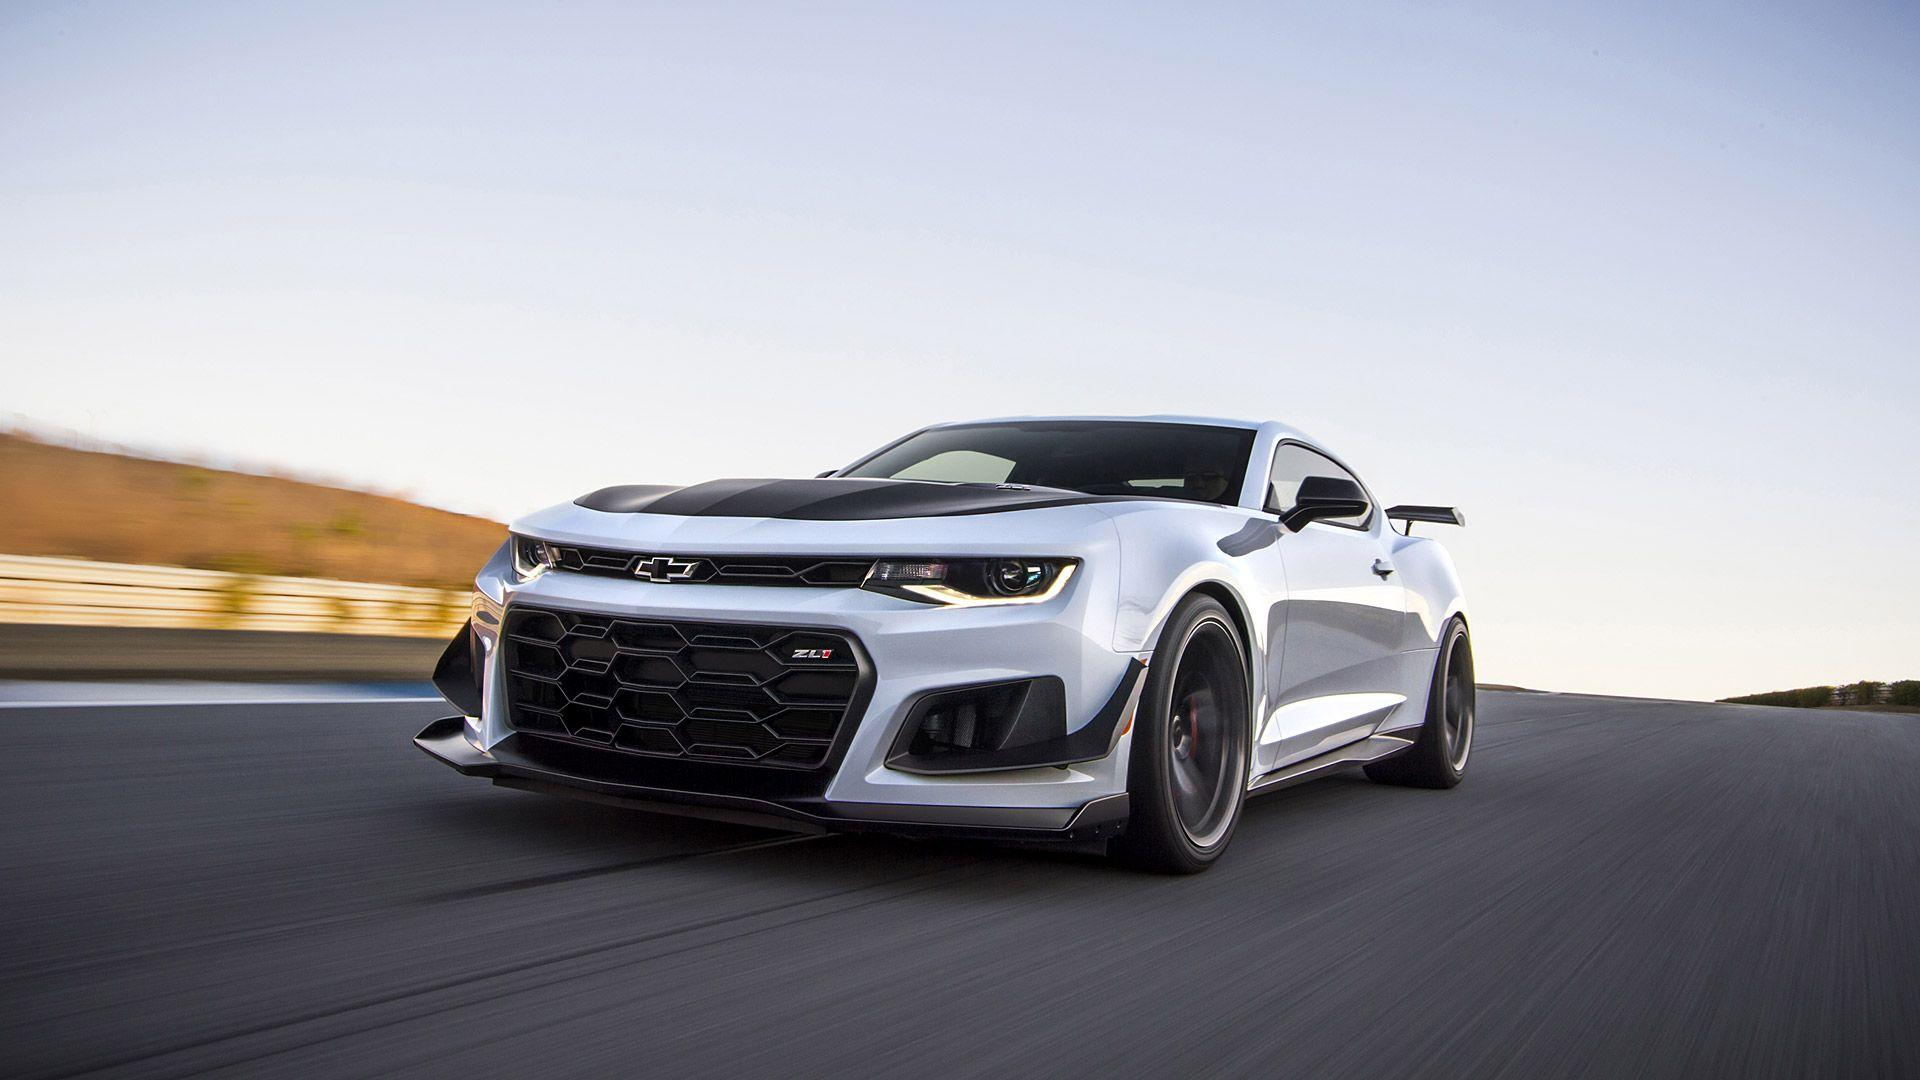 2018 Chevrolet Camaro ZL1 1LE Wallpapers & HD Image